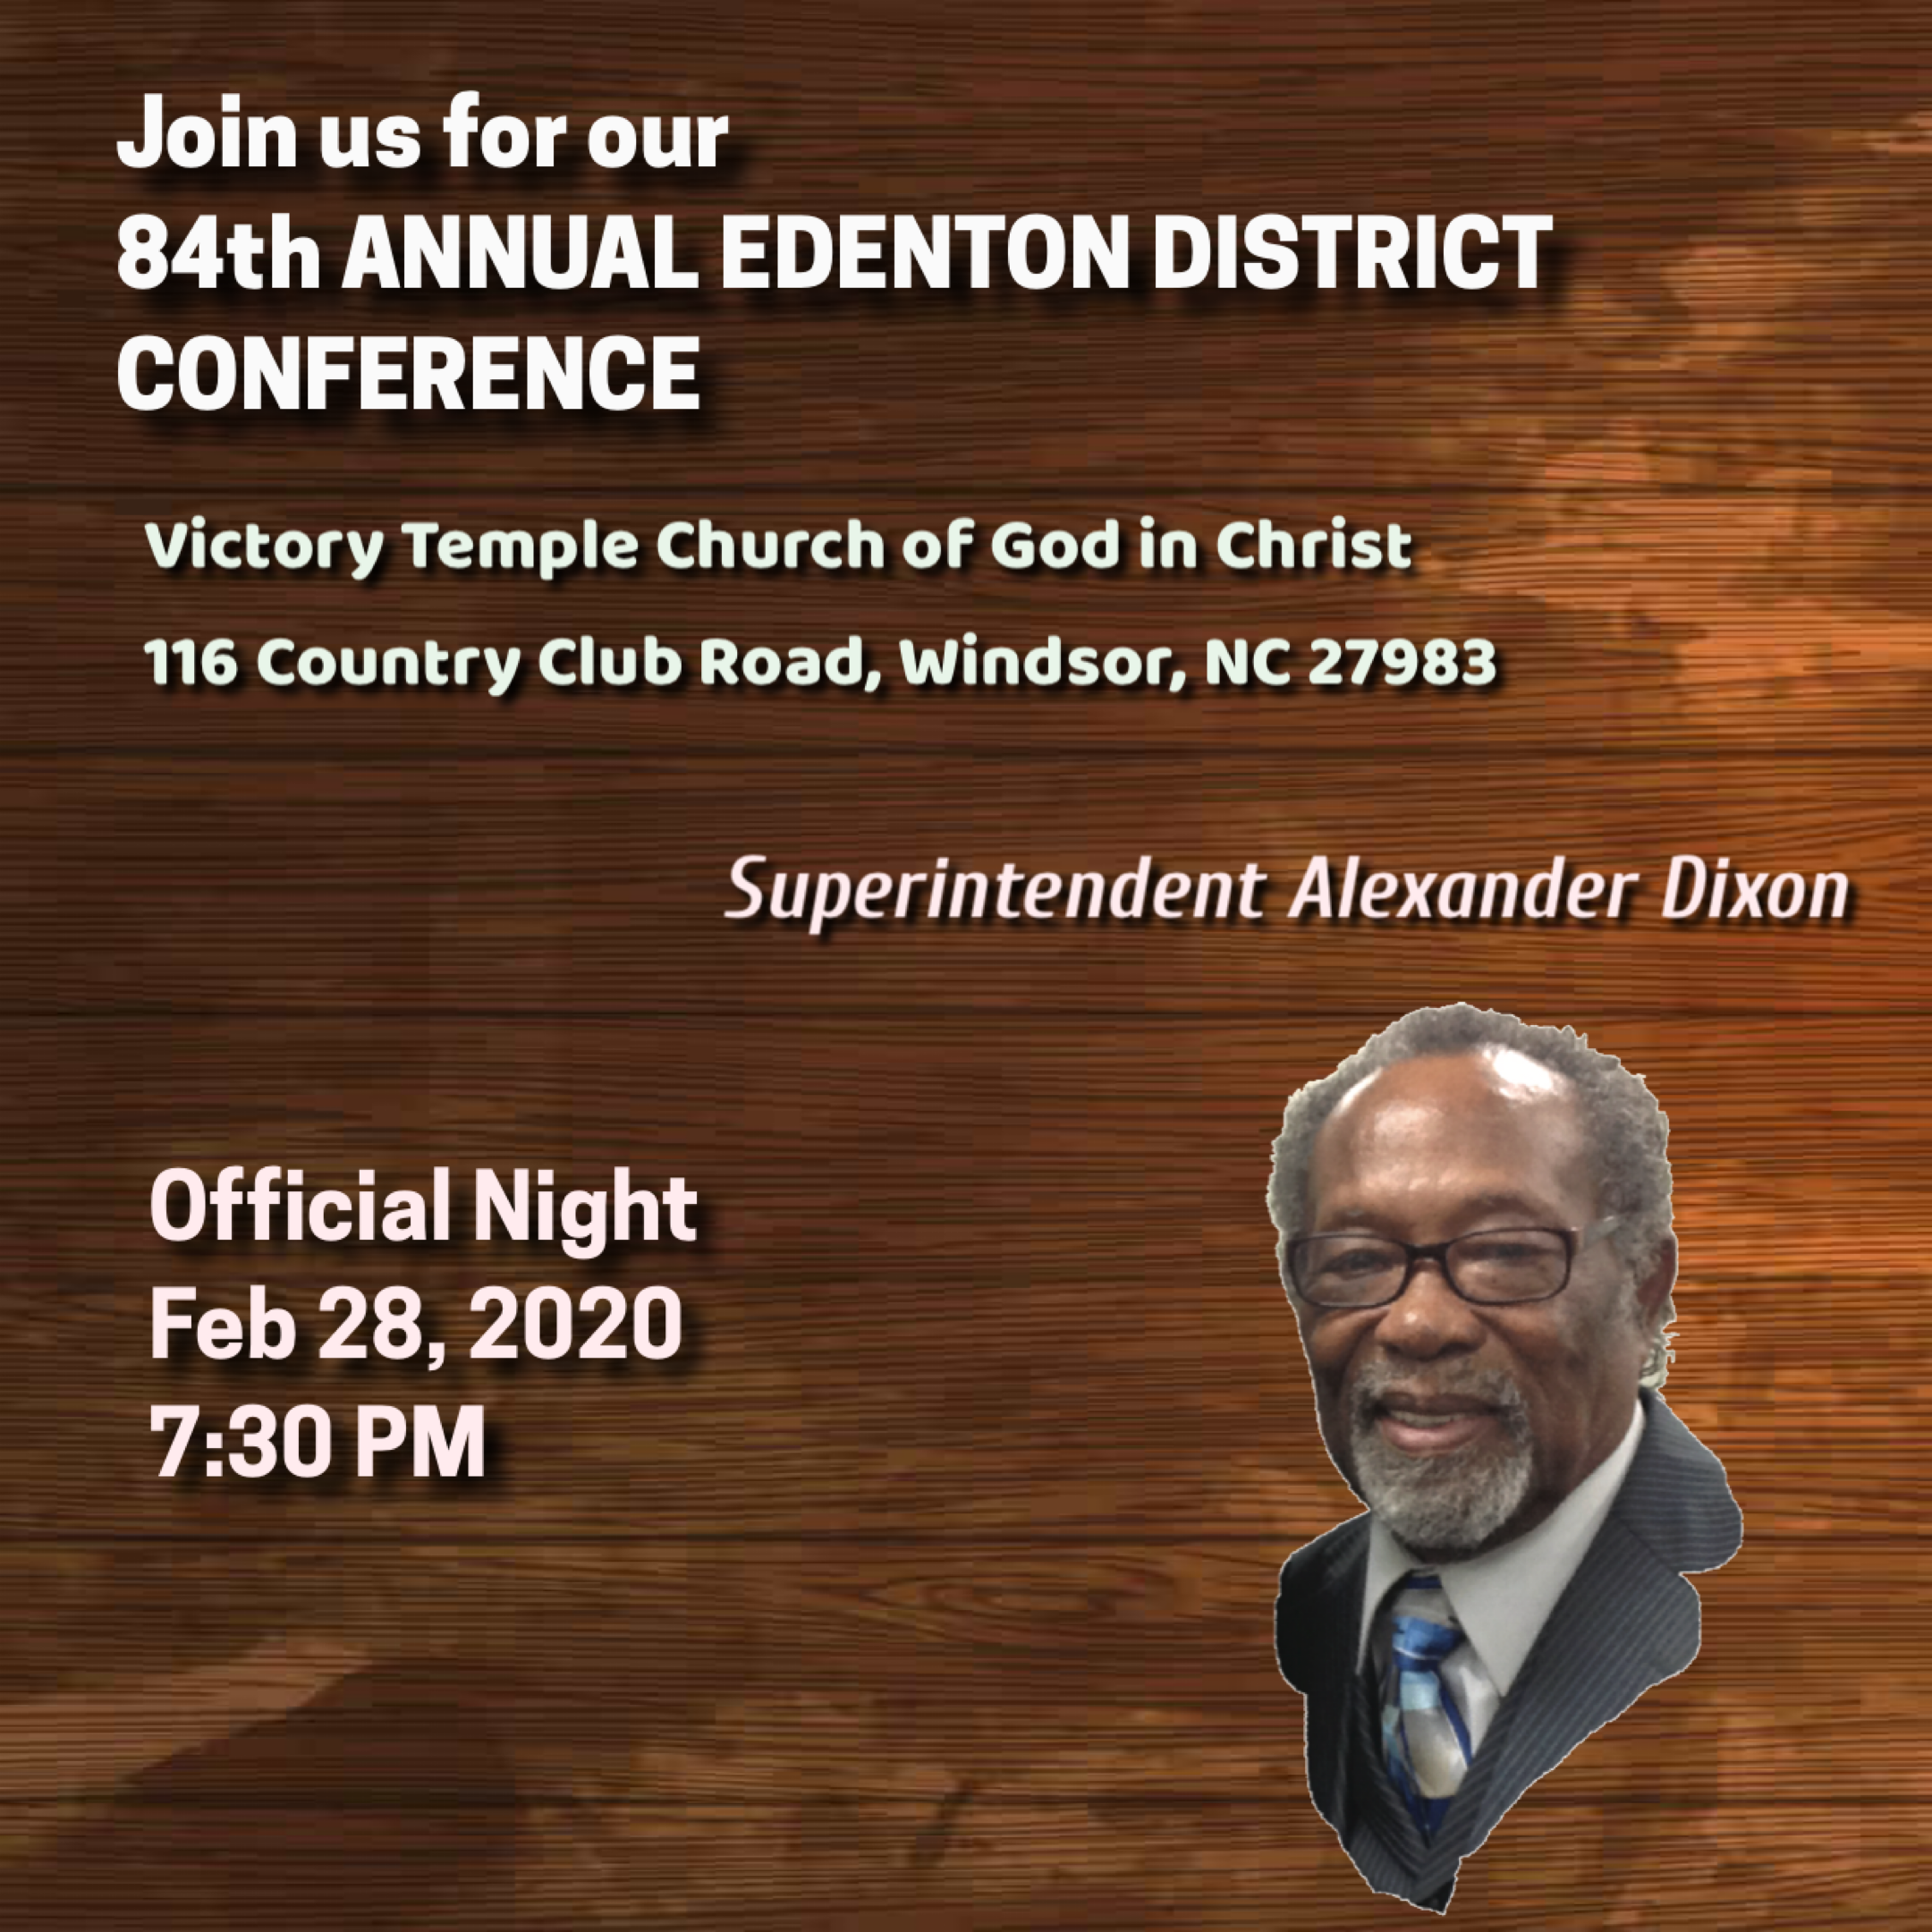 84th Annual Edenton District Conference, Official night, Superintendent Alexander Dixon